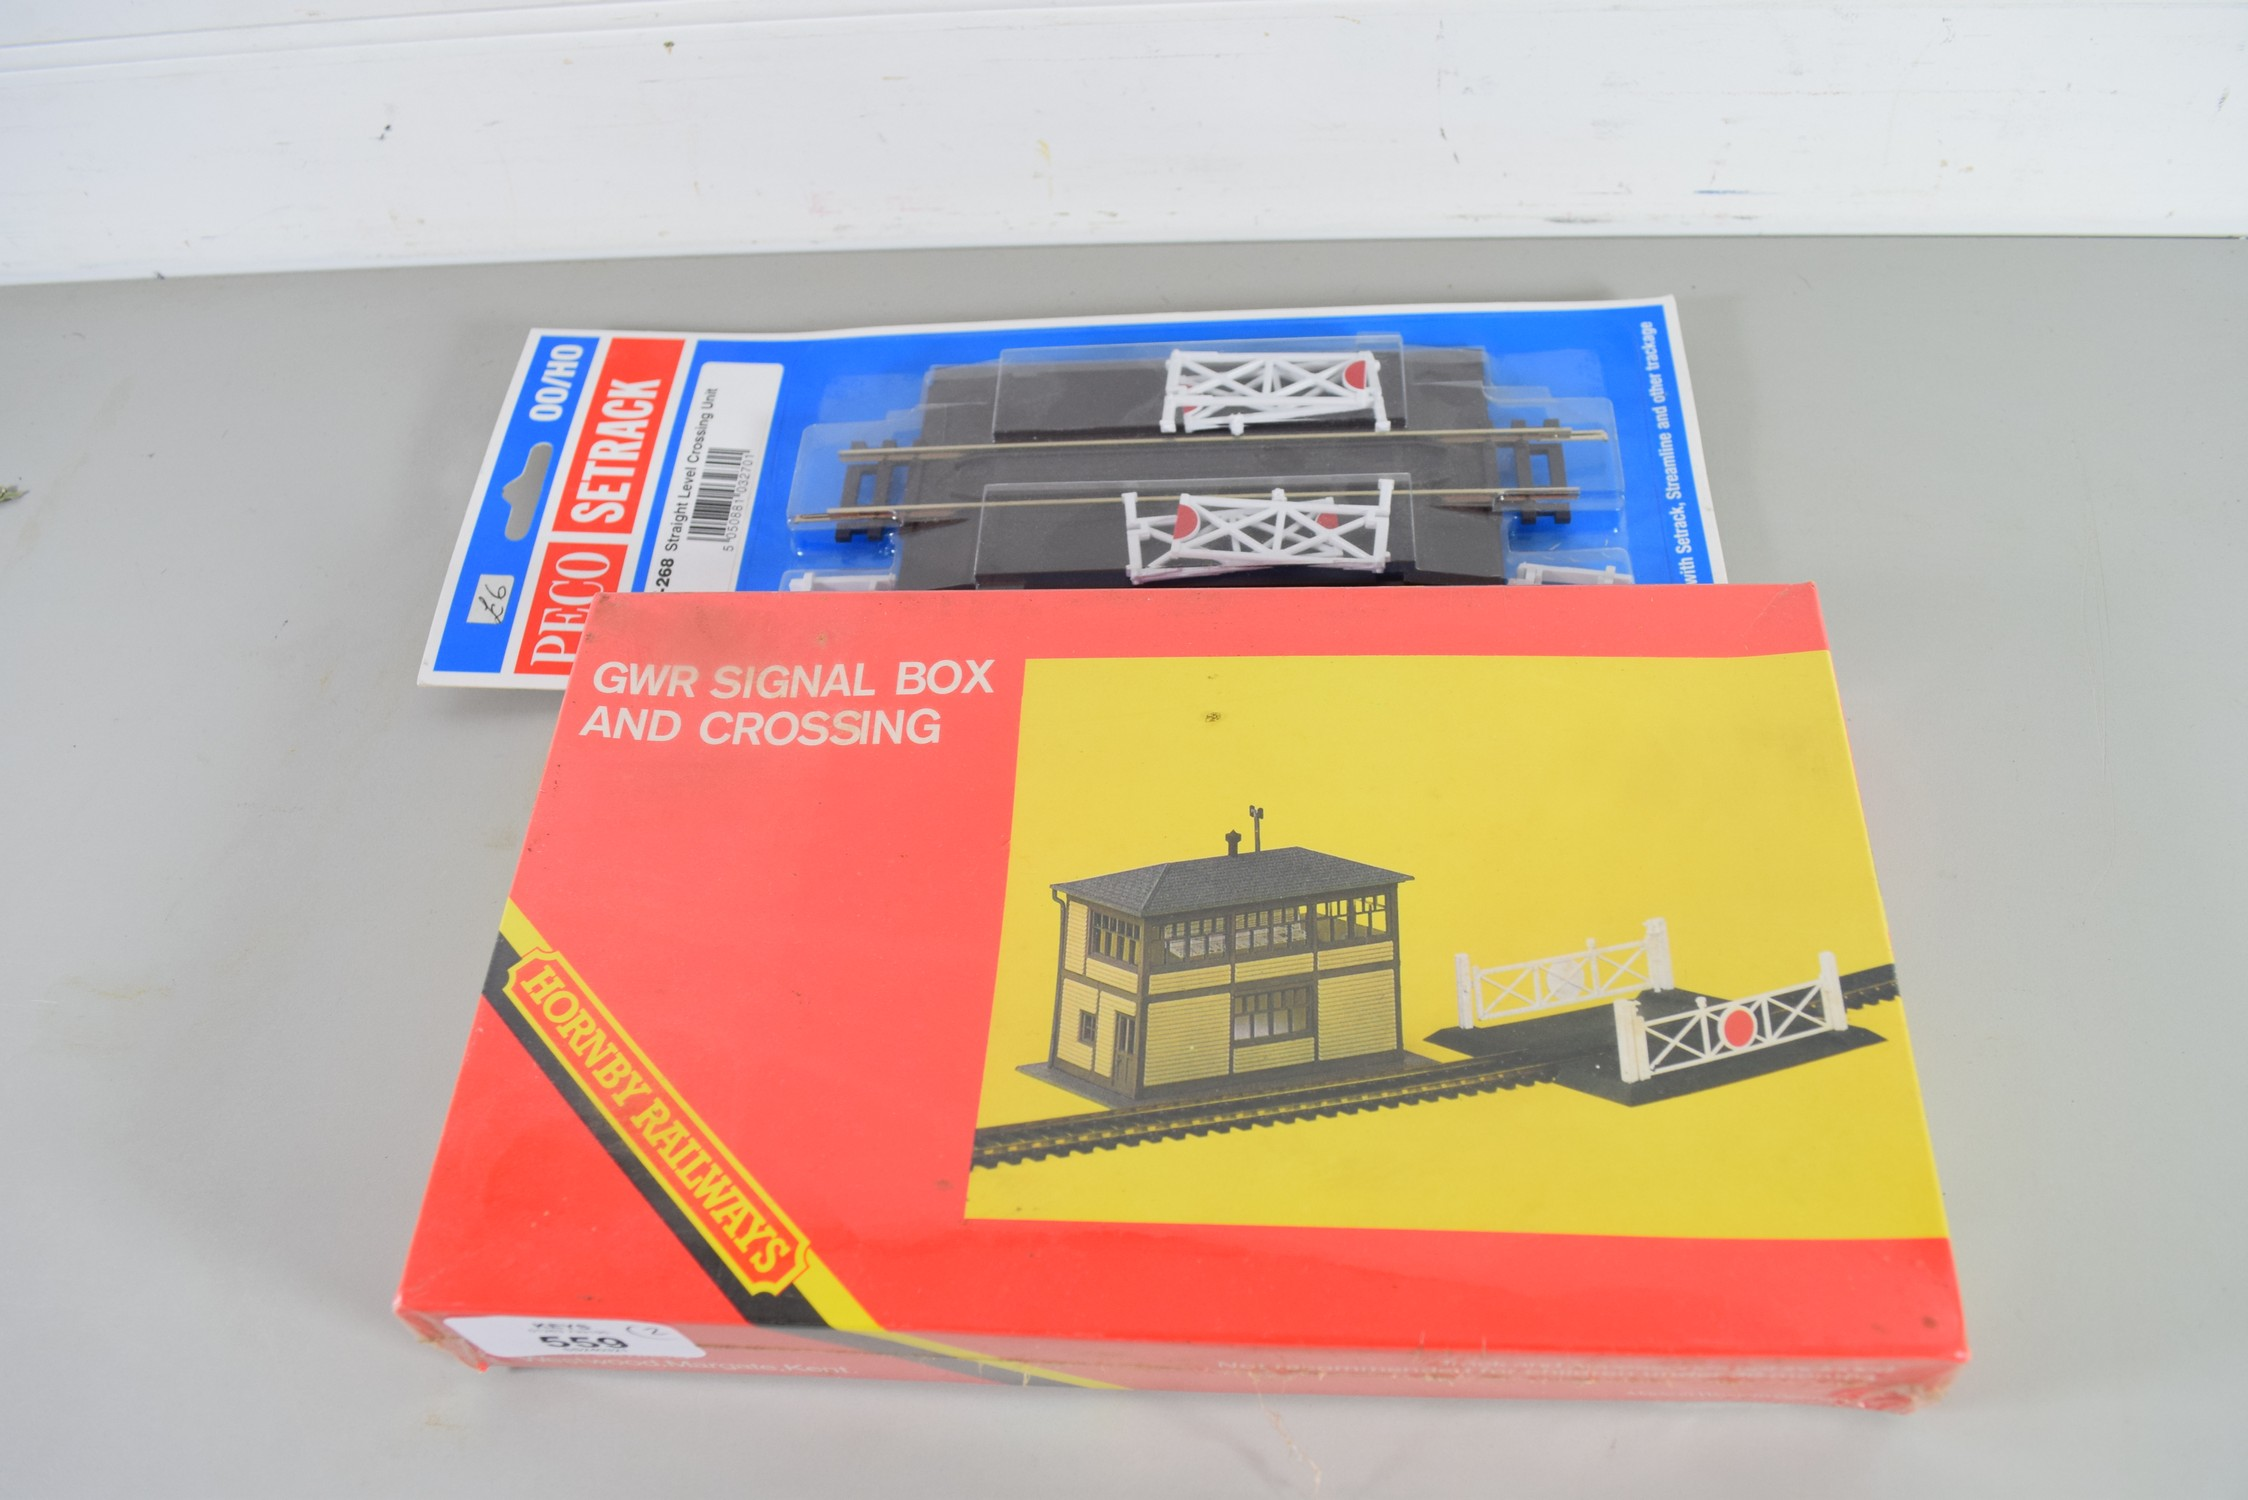 Boxed Hornby 00 gauge R186 GWR signal box and crossing together with a Peco set rack ST-268 straight